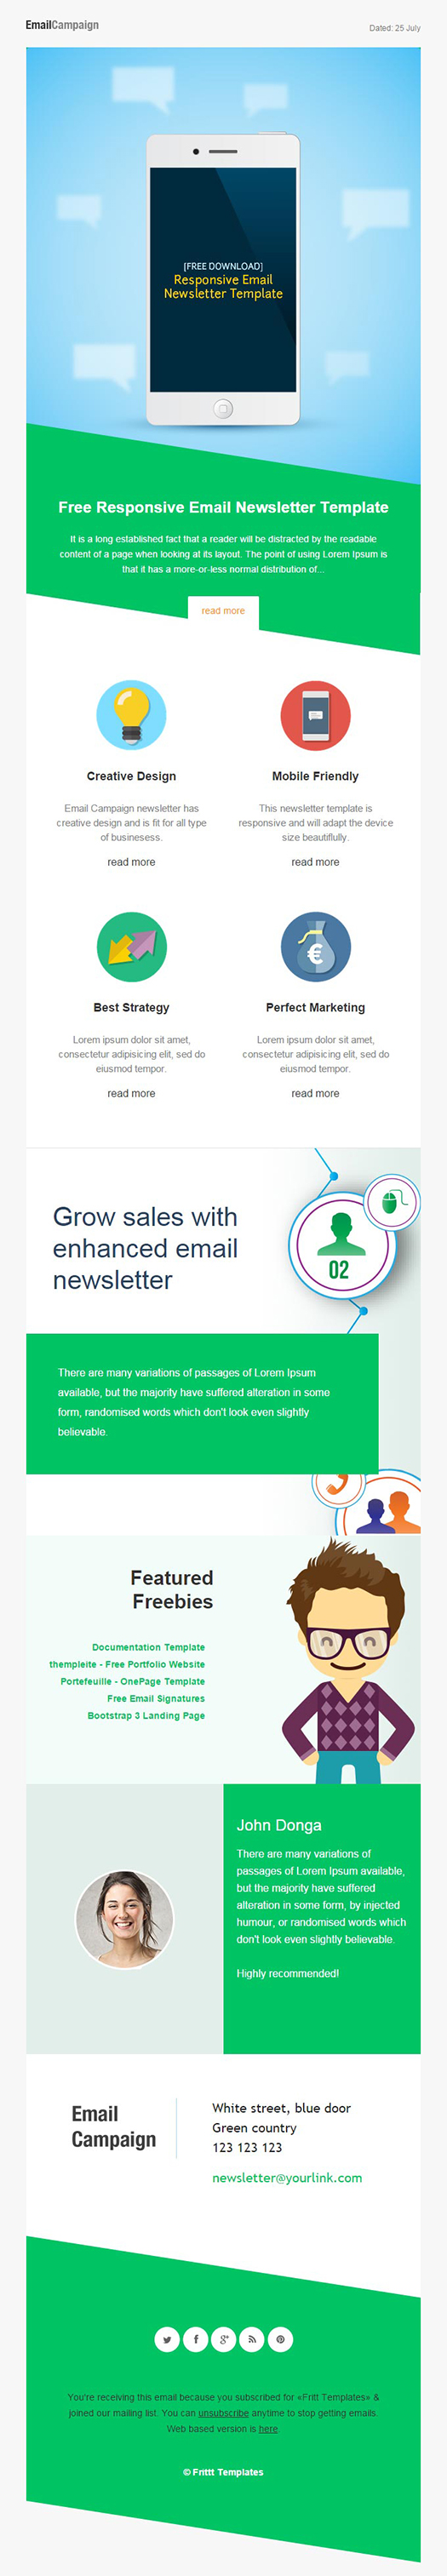 Responsive email newsletter template free download on for How to create an email newsletter template